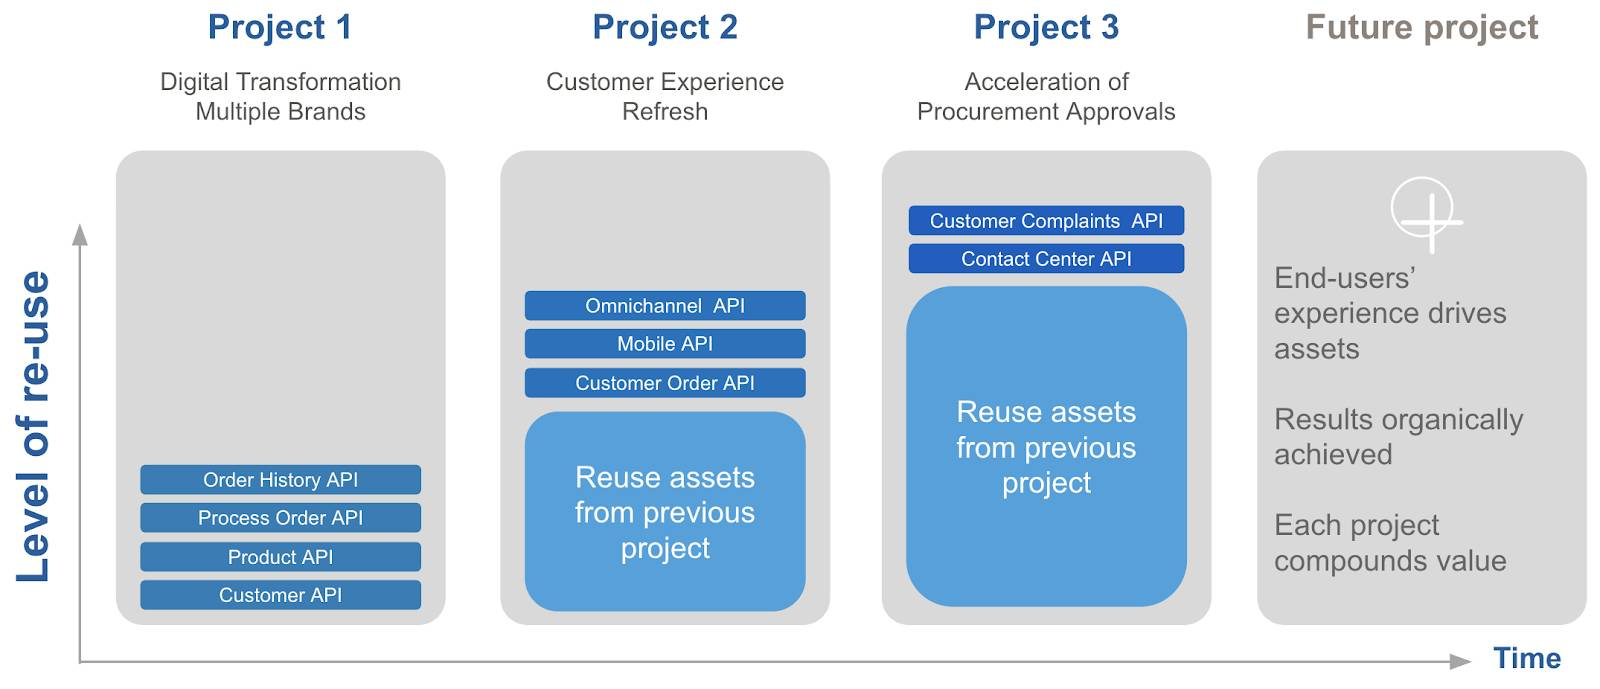 Diagram showing three projects, each building on the reusable assets from the previous projects. Project 1, Digital Transformation Multiple Brands, includes the Order History API, PROCESS Order API, Project API, and Customer API. Project 2, Customer Experience Refresh, includes all the APIs from project 1, and adds the Omnichannel API, Mobil API, and Customer Order API. Project 3, Acceleration of Procurement Approvals, includes all the APIs from projects 1 and 2, and adds the Customer Complaints API, and Contact Center API. Note that each future projects are driven by end-user experience, achieve results organically, and each project compounds value over time.